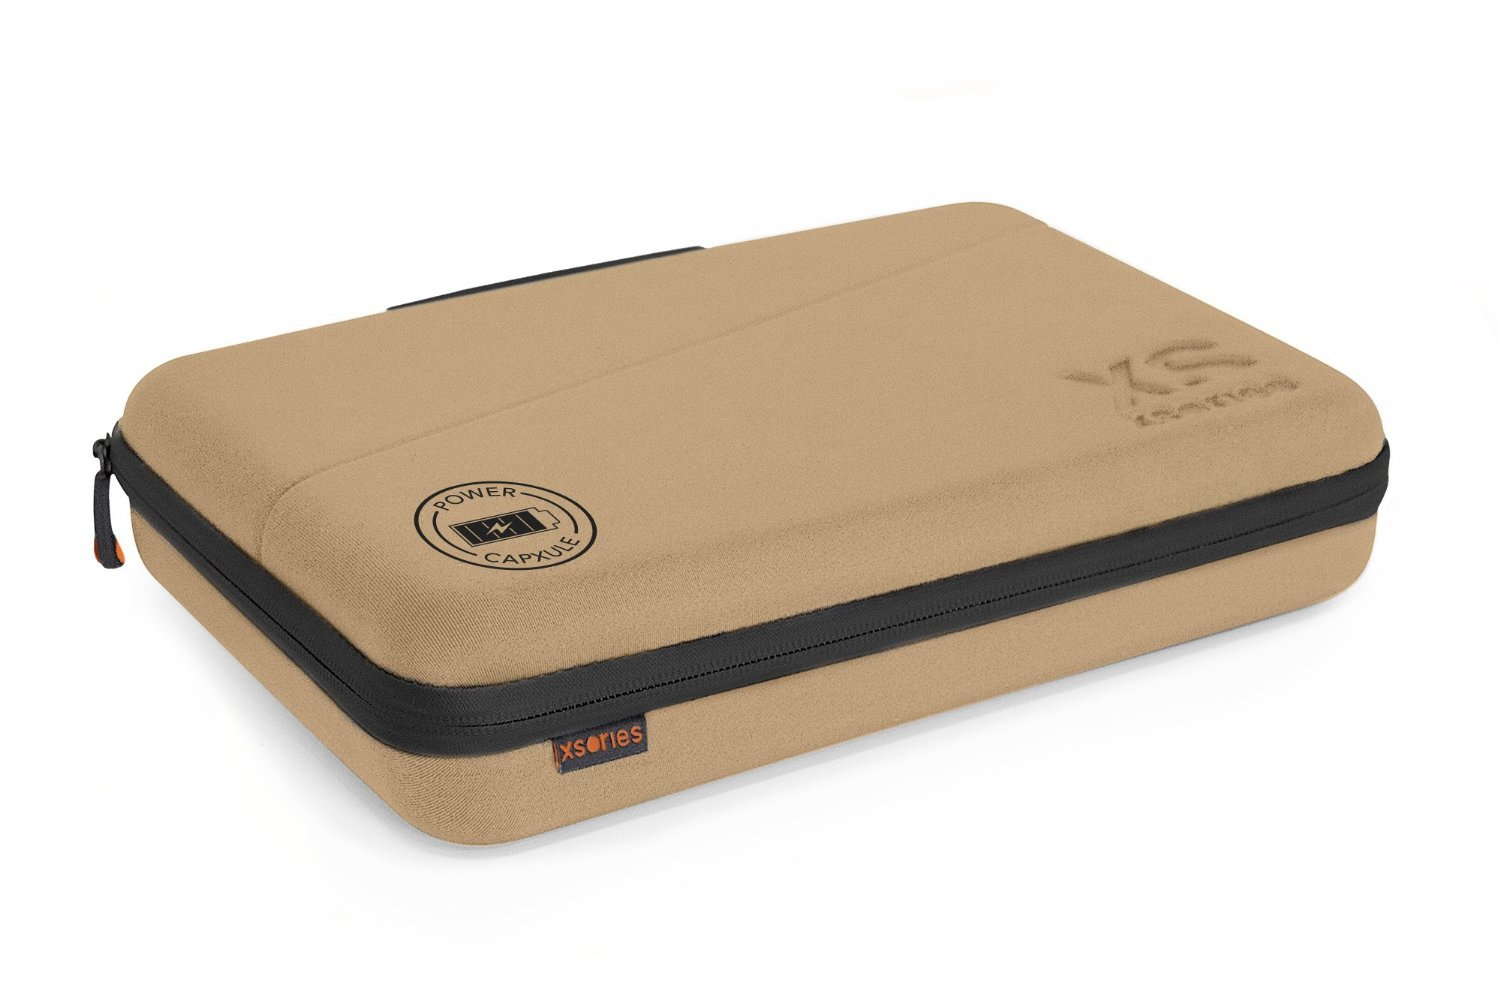 XSories Large Power Capxule GoPro Case with Power Bank Charger, Pre-Cut Foam Inlays for GoPro Accessories (Khaki)